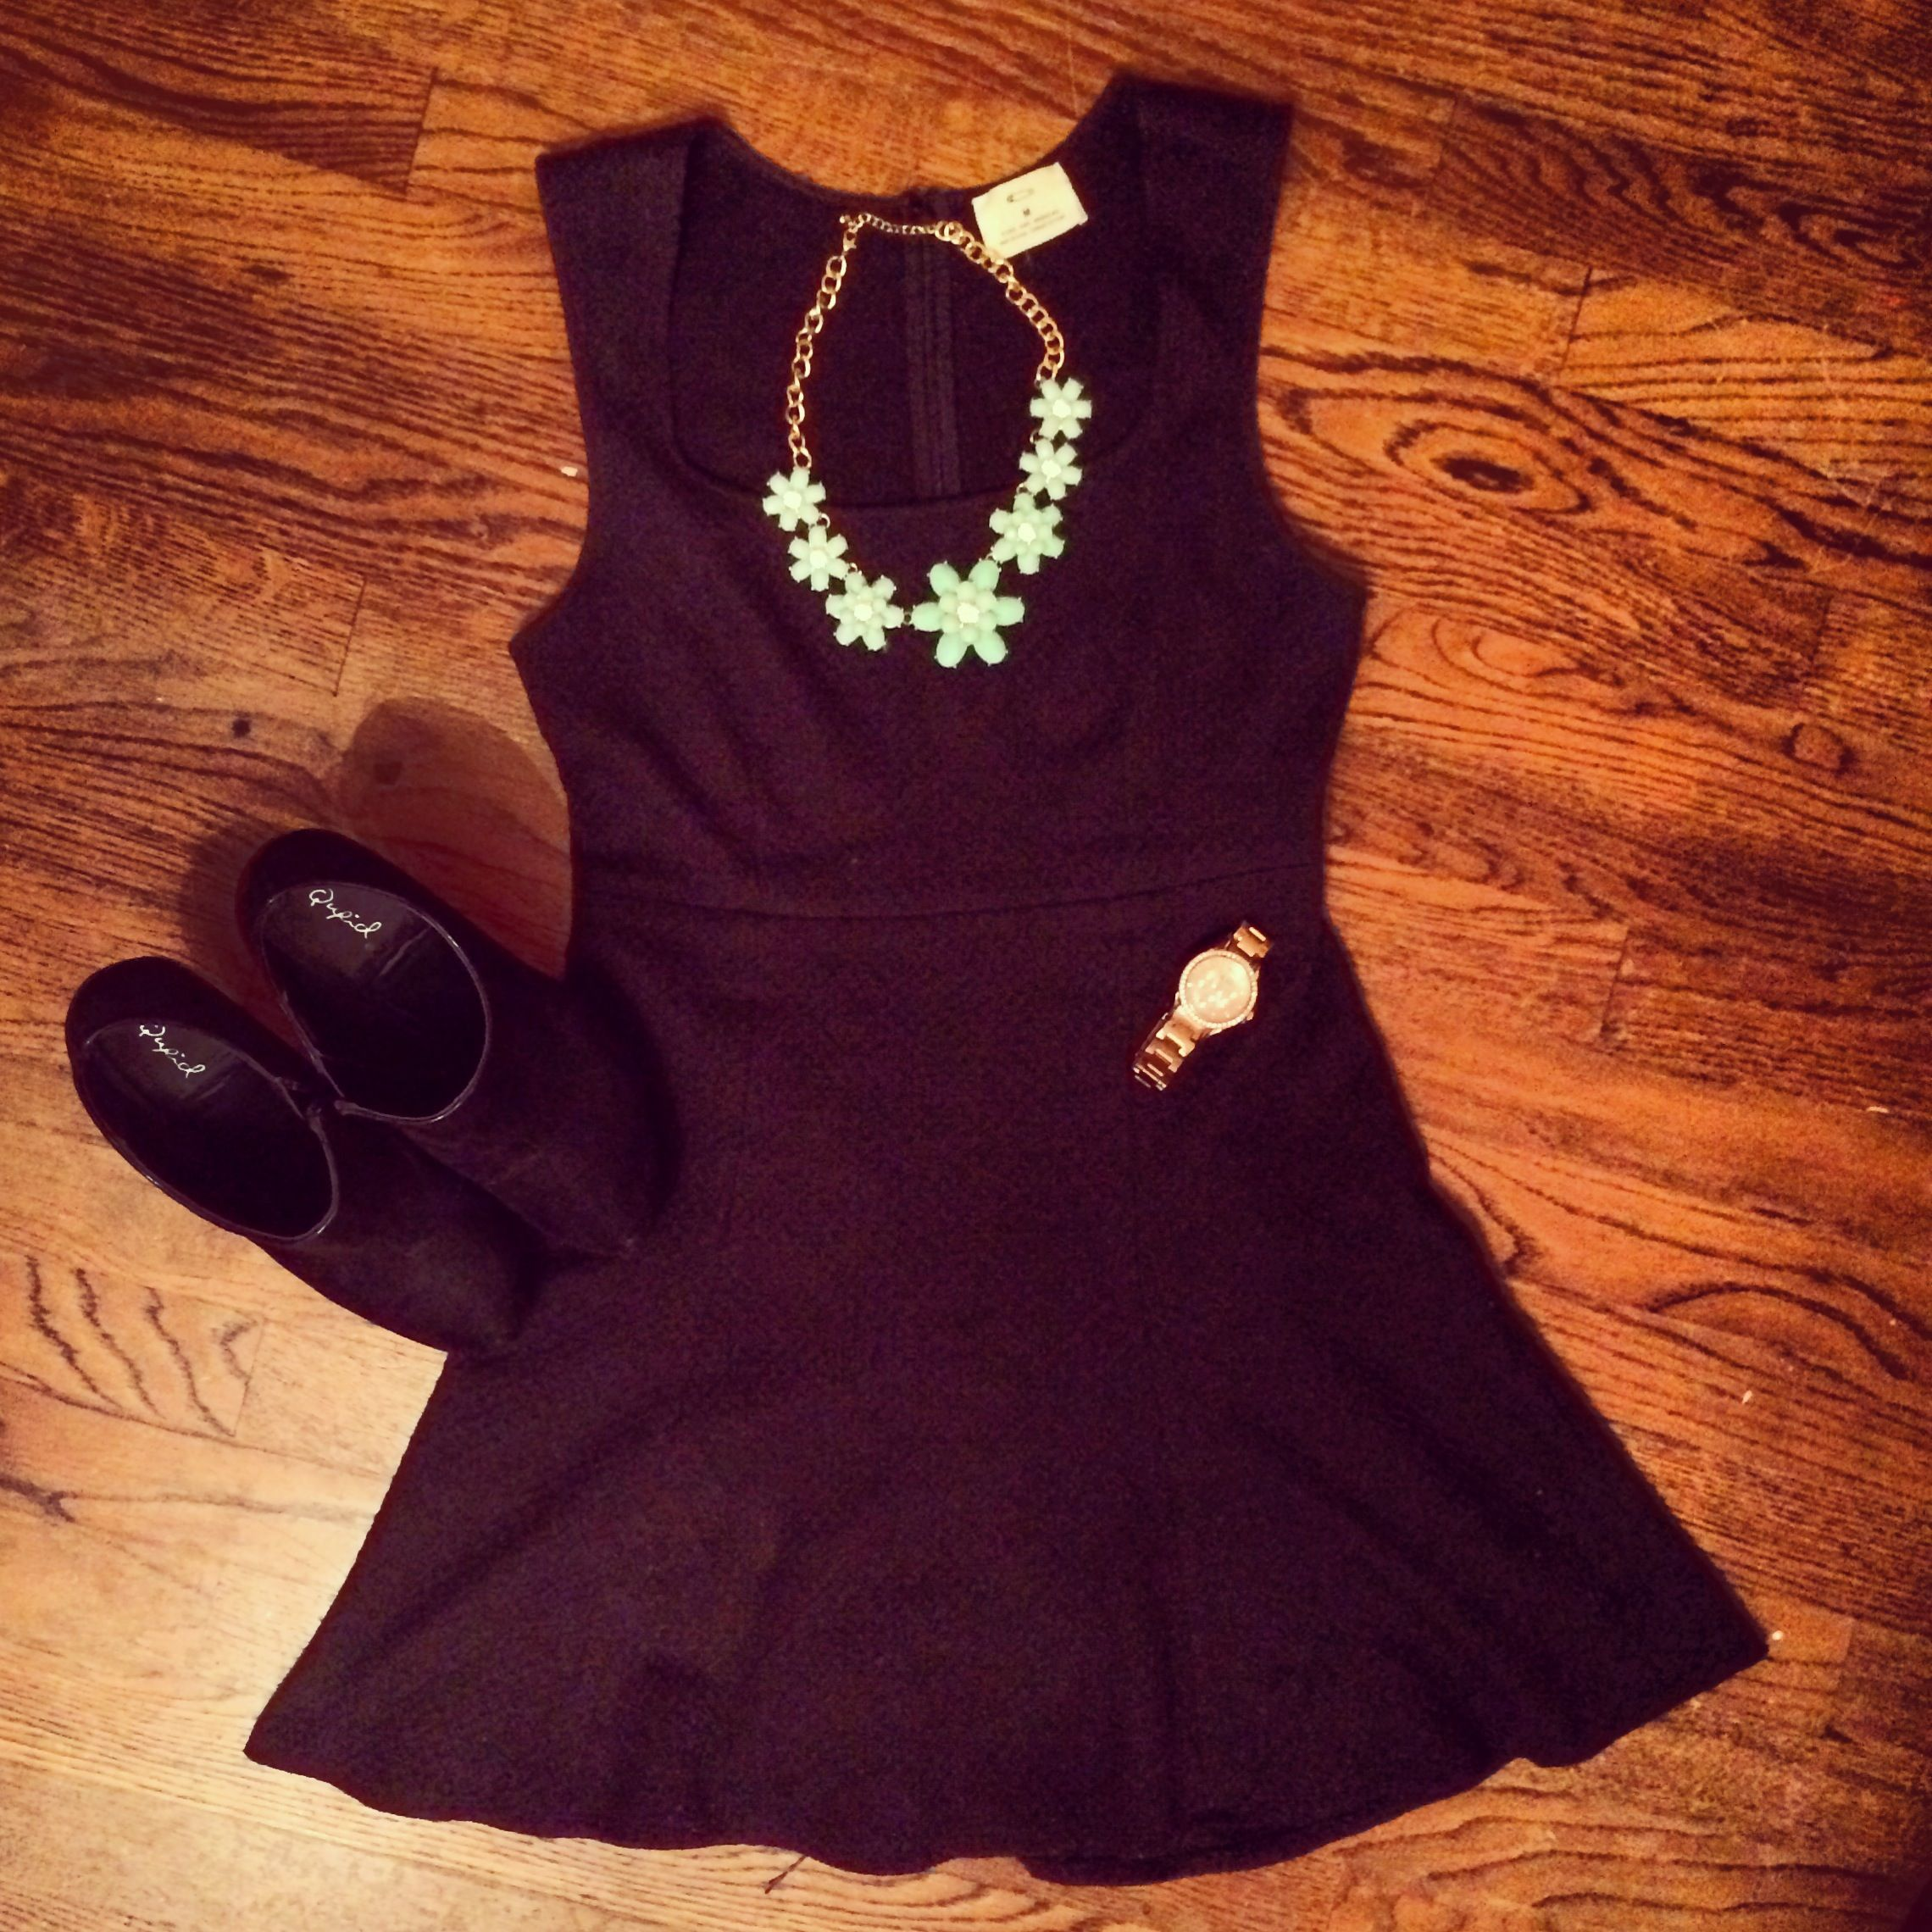 LBD: Little Black Dress from Urban Outfitters, Qupid black booties, Forever 21 turquoise floral statement necklace, Fossil rose gold watch